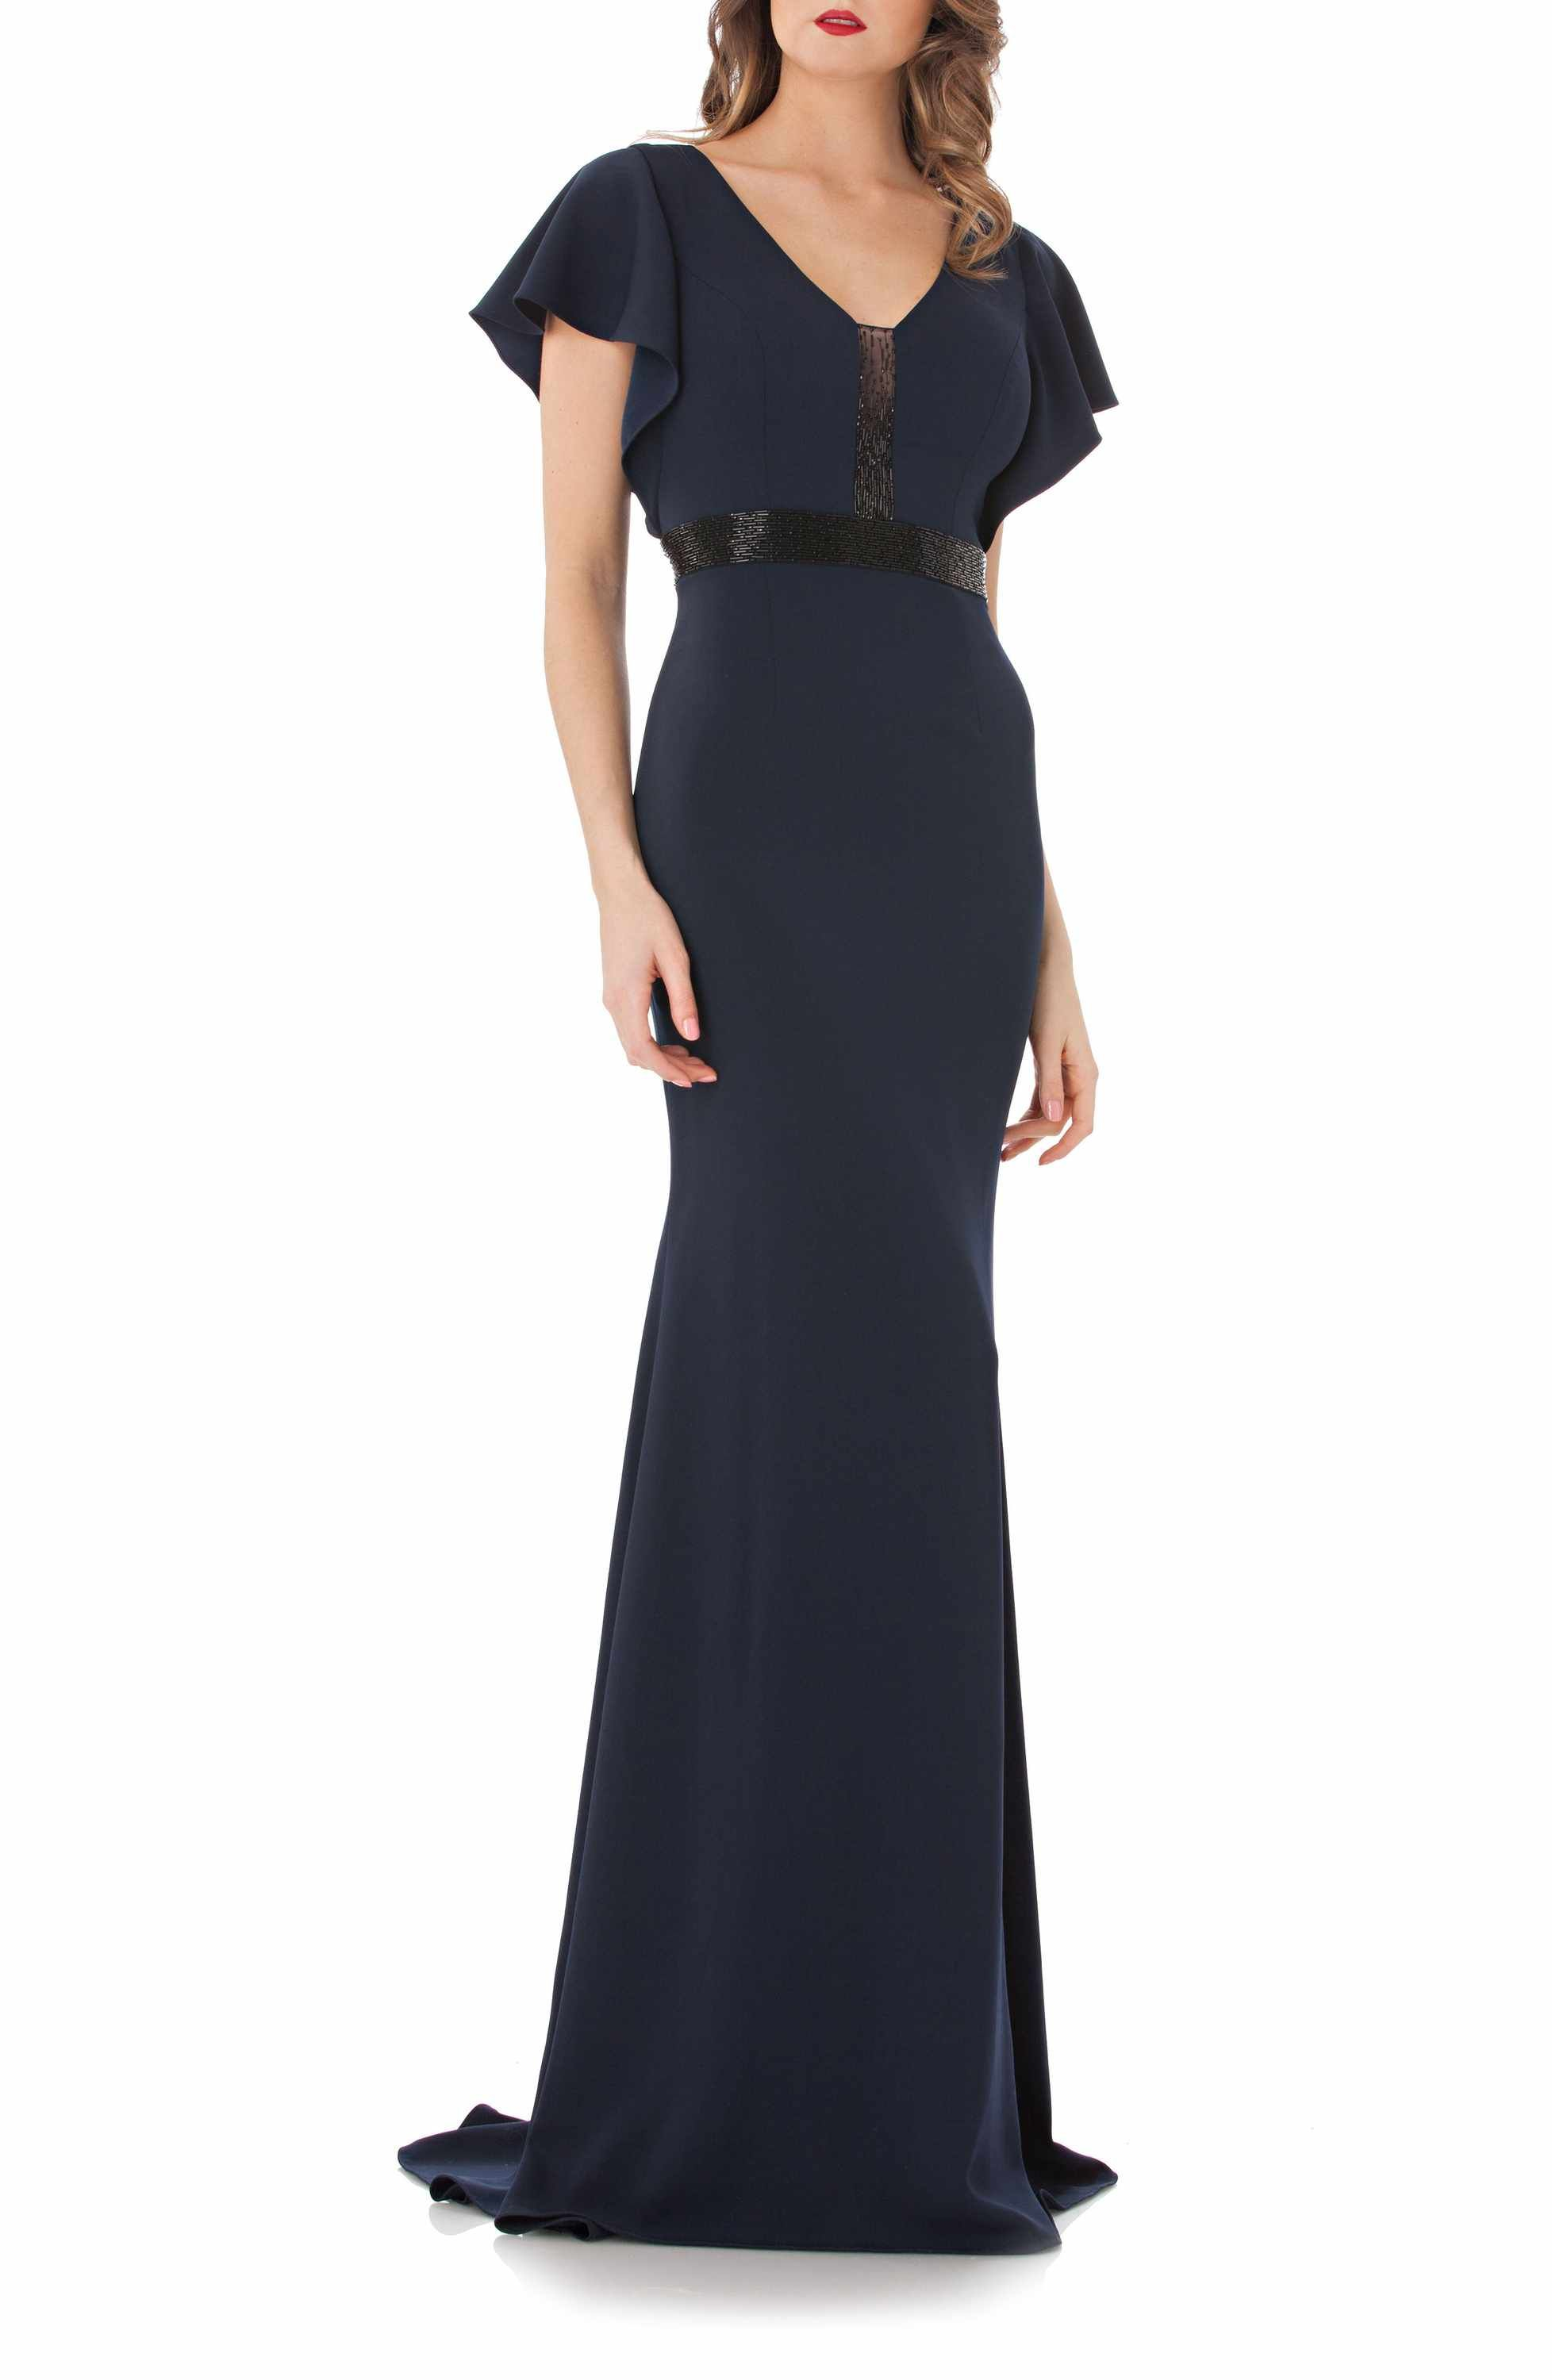 8b9ab5e35bfb70 Main Image - Carmen Marc Valvo Infusion Beaded Flutter Sleeve Gown ...